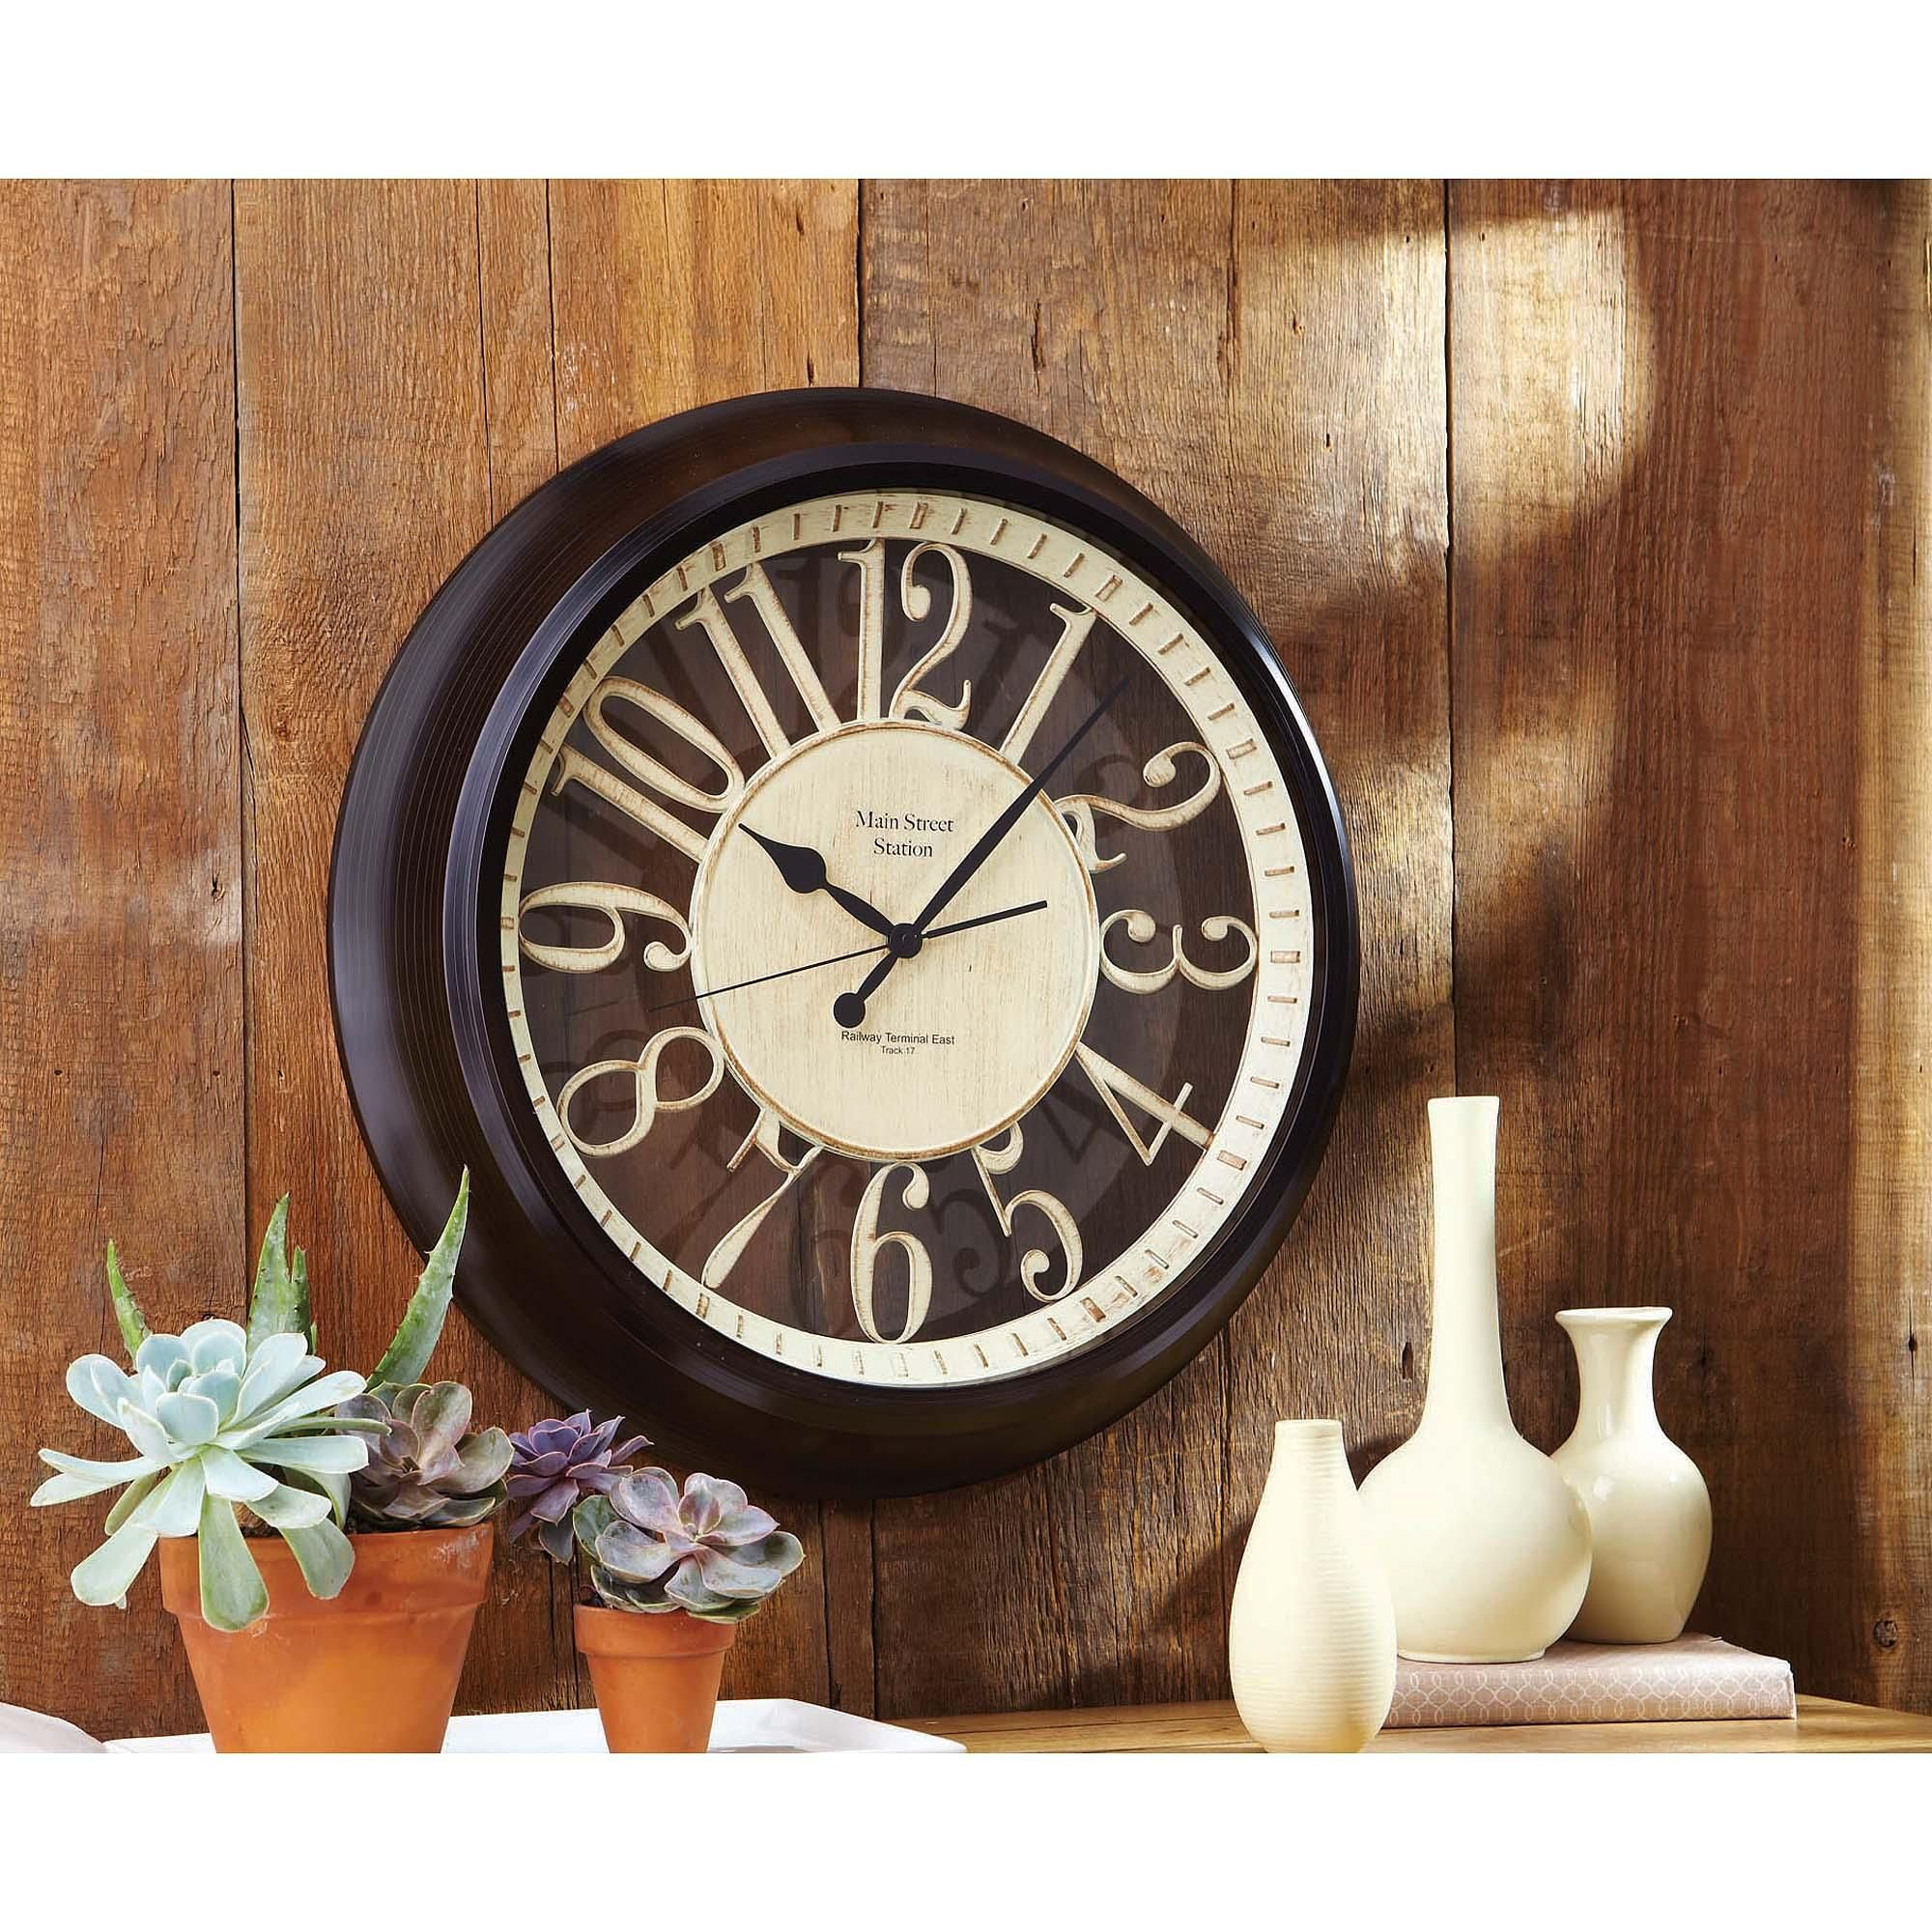 Better homes and gardens silhouette wall clock walmart